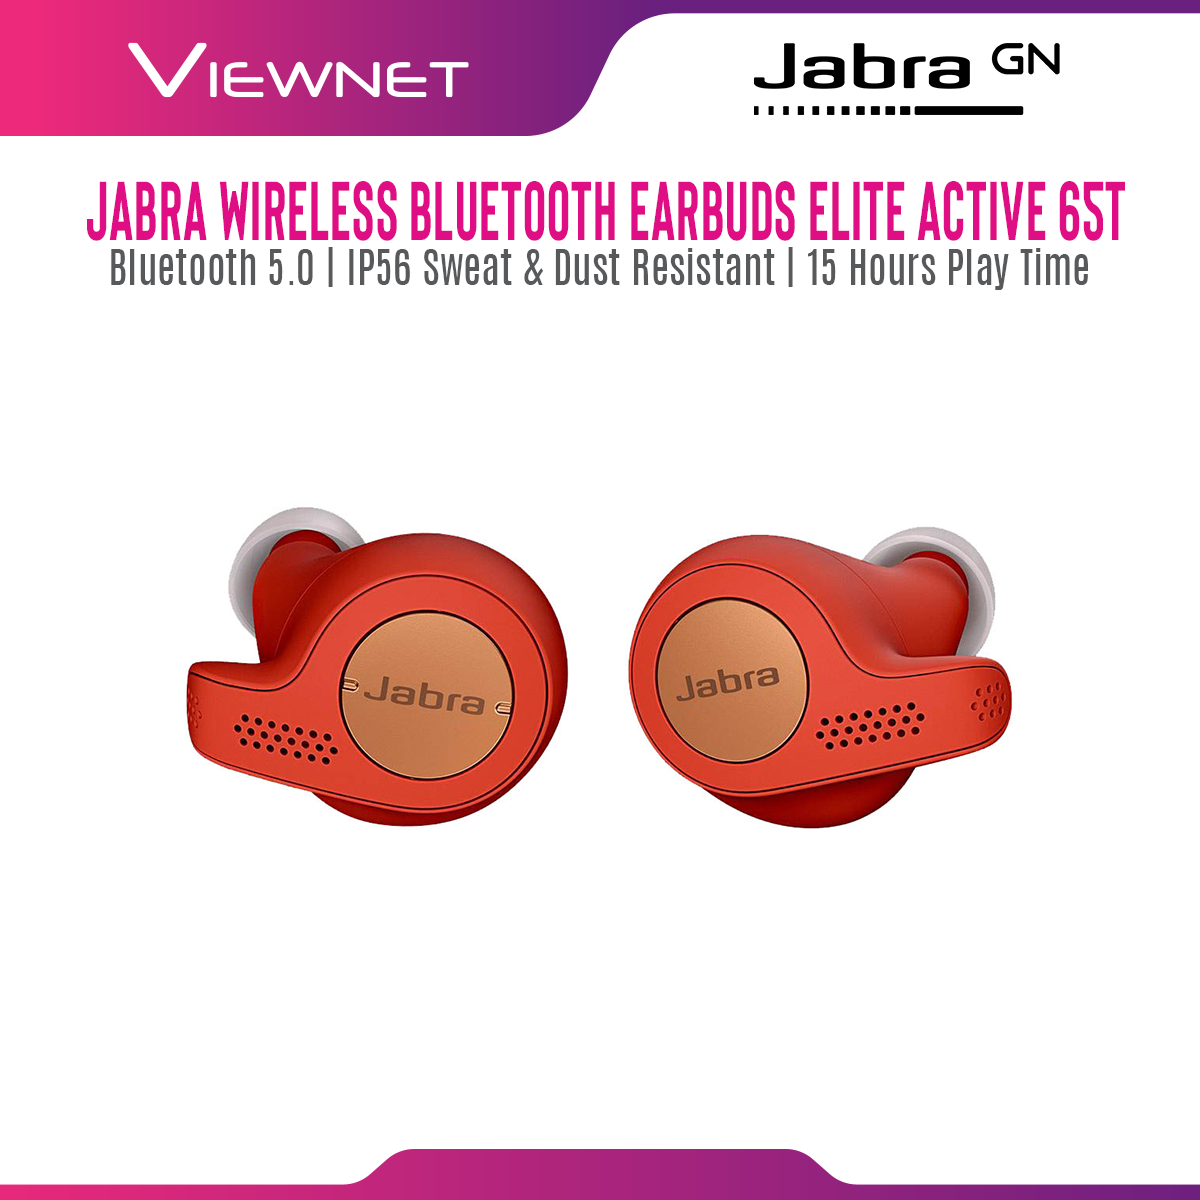 Jabra Elite Active 65t True Wireless Bluetooth Earbuds with Bluetooth 5.0, IP56 Sweat & Dust Resistant, 15 Hours Play Time